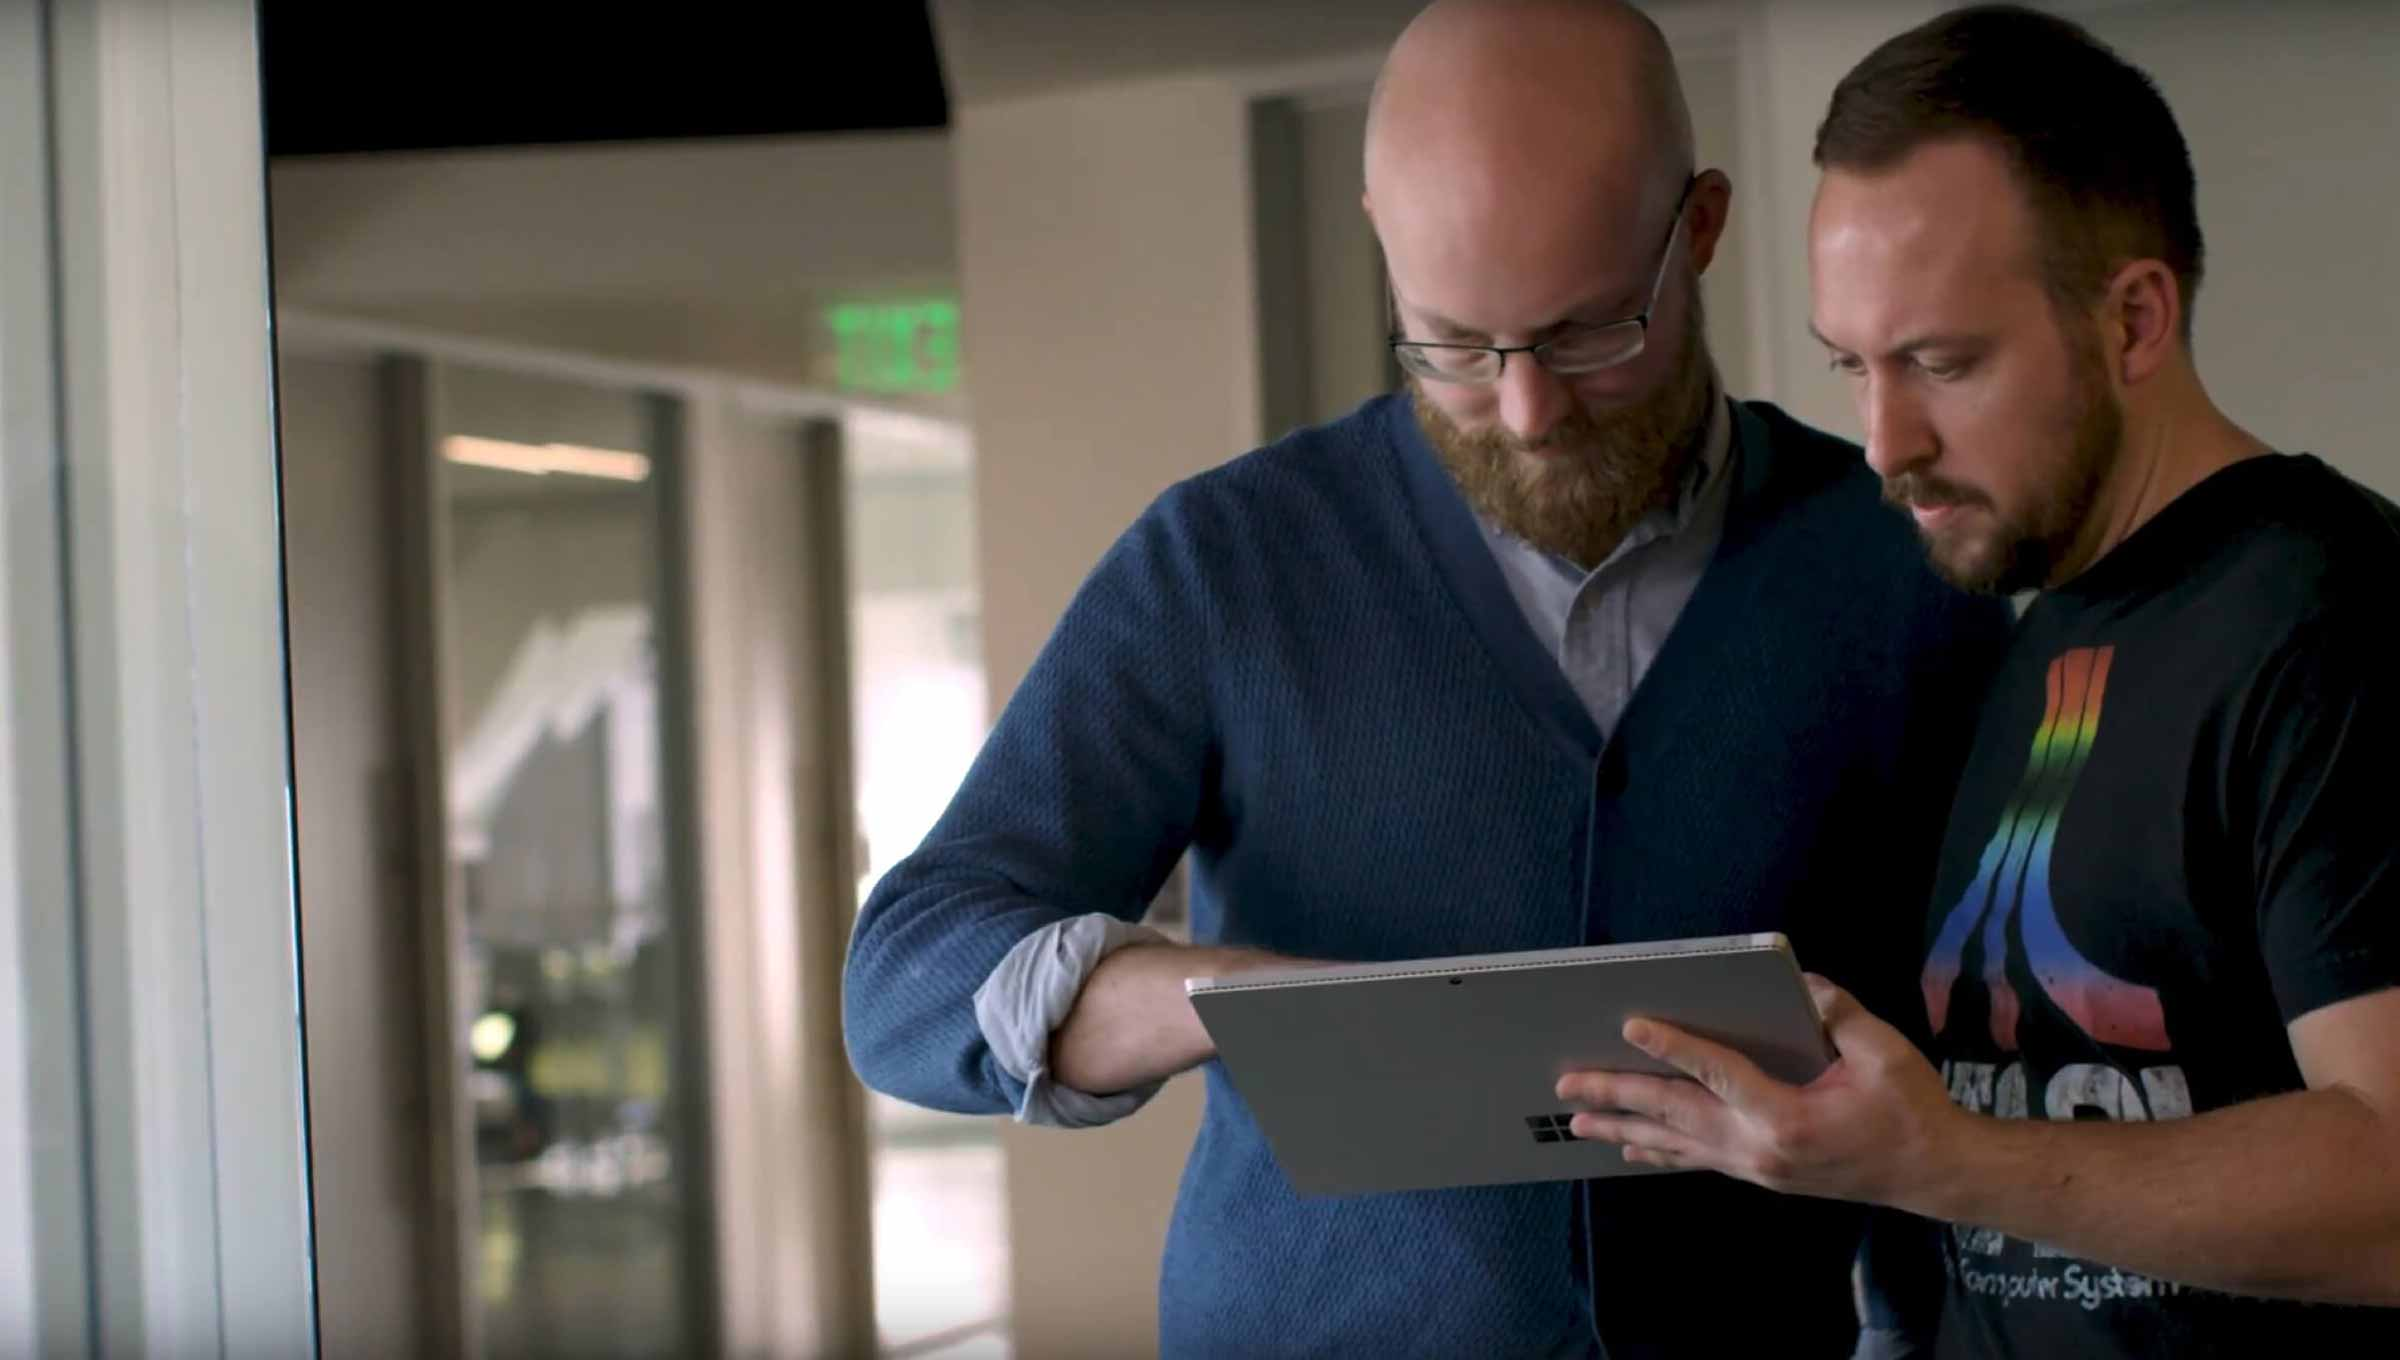 Two men looking at a Microsoft surface in an office hallway.